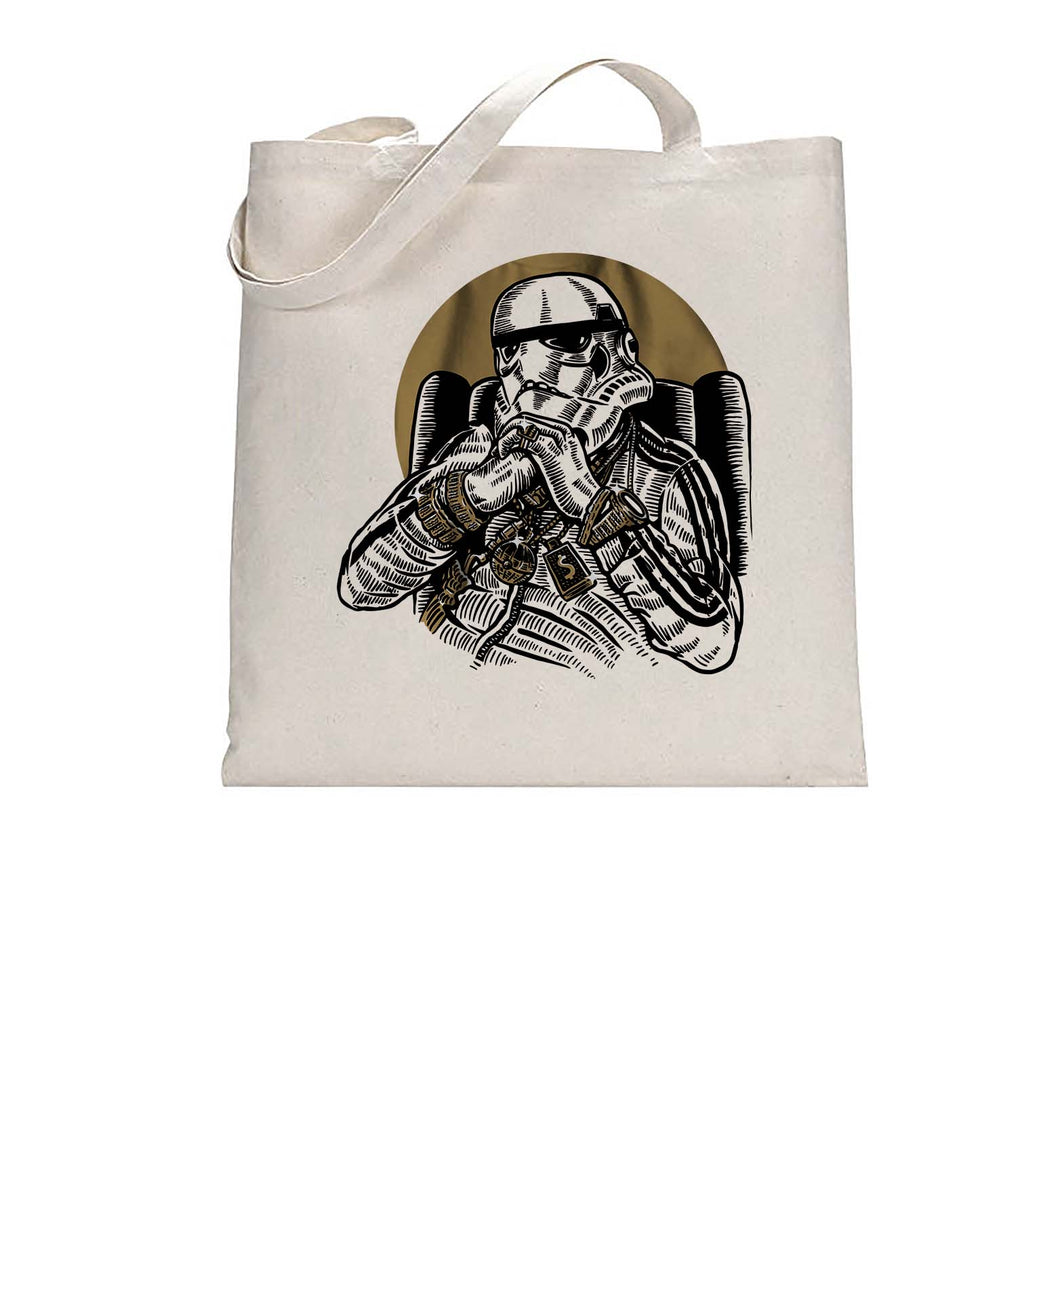 Gangsta Trooper Movie Inspired Fan Art Graphic Tote Bag Cotton Shopper 38x42cm 3327